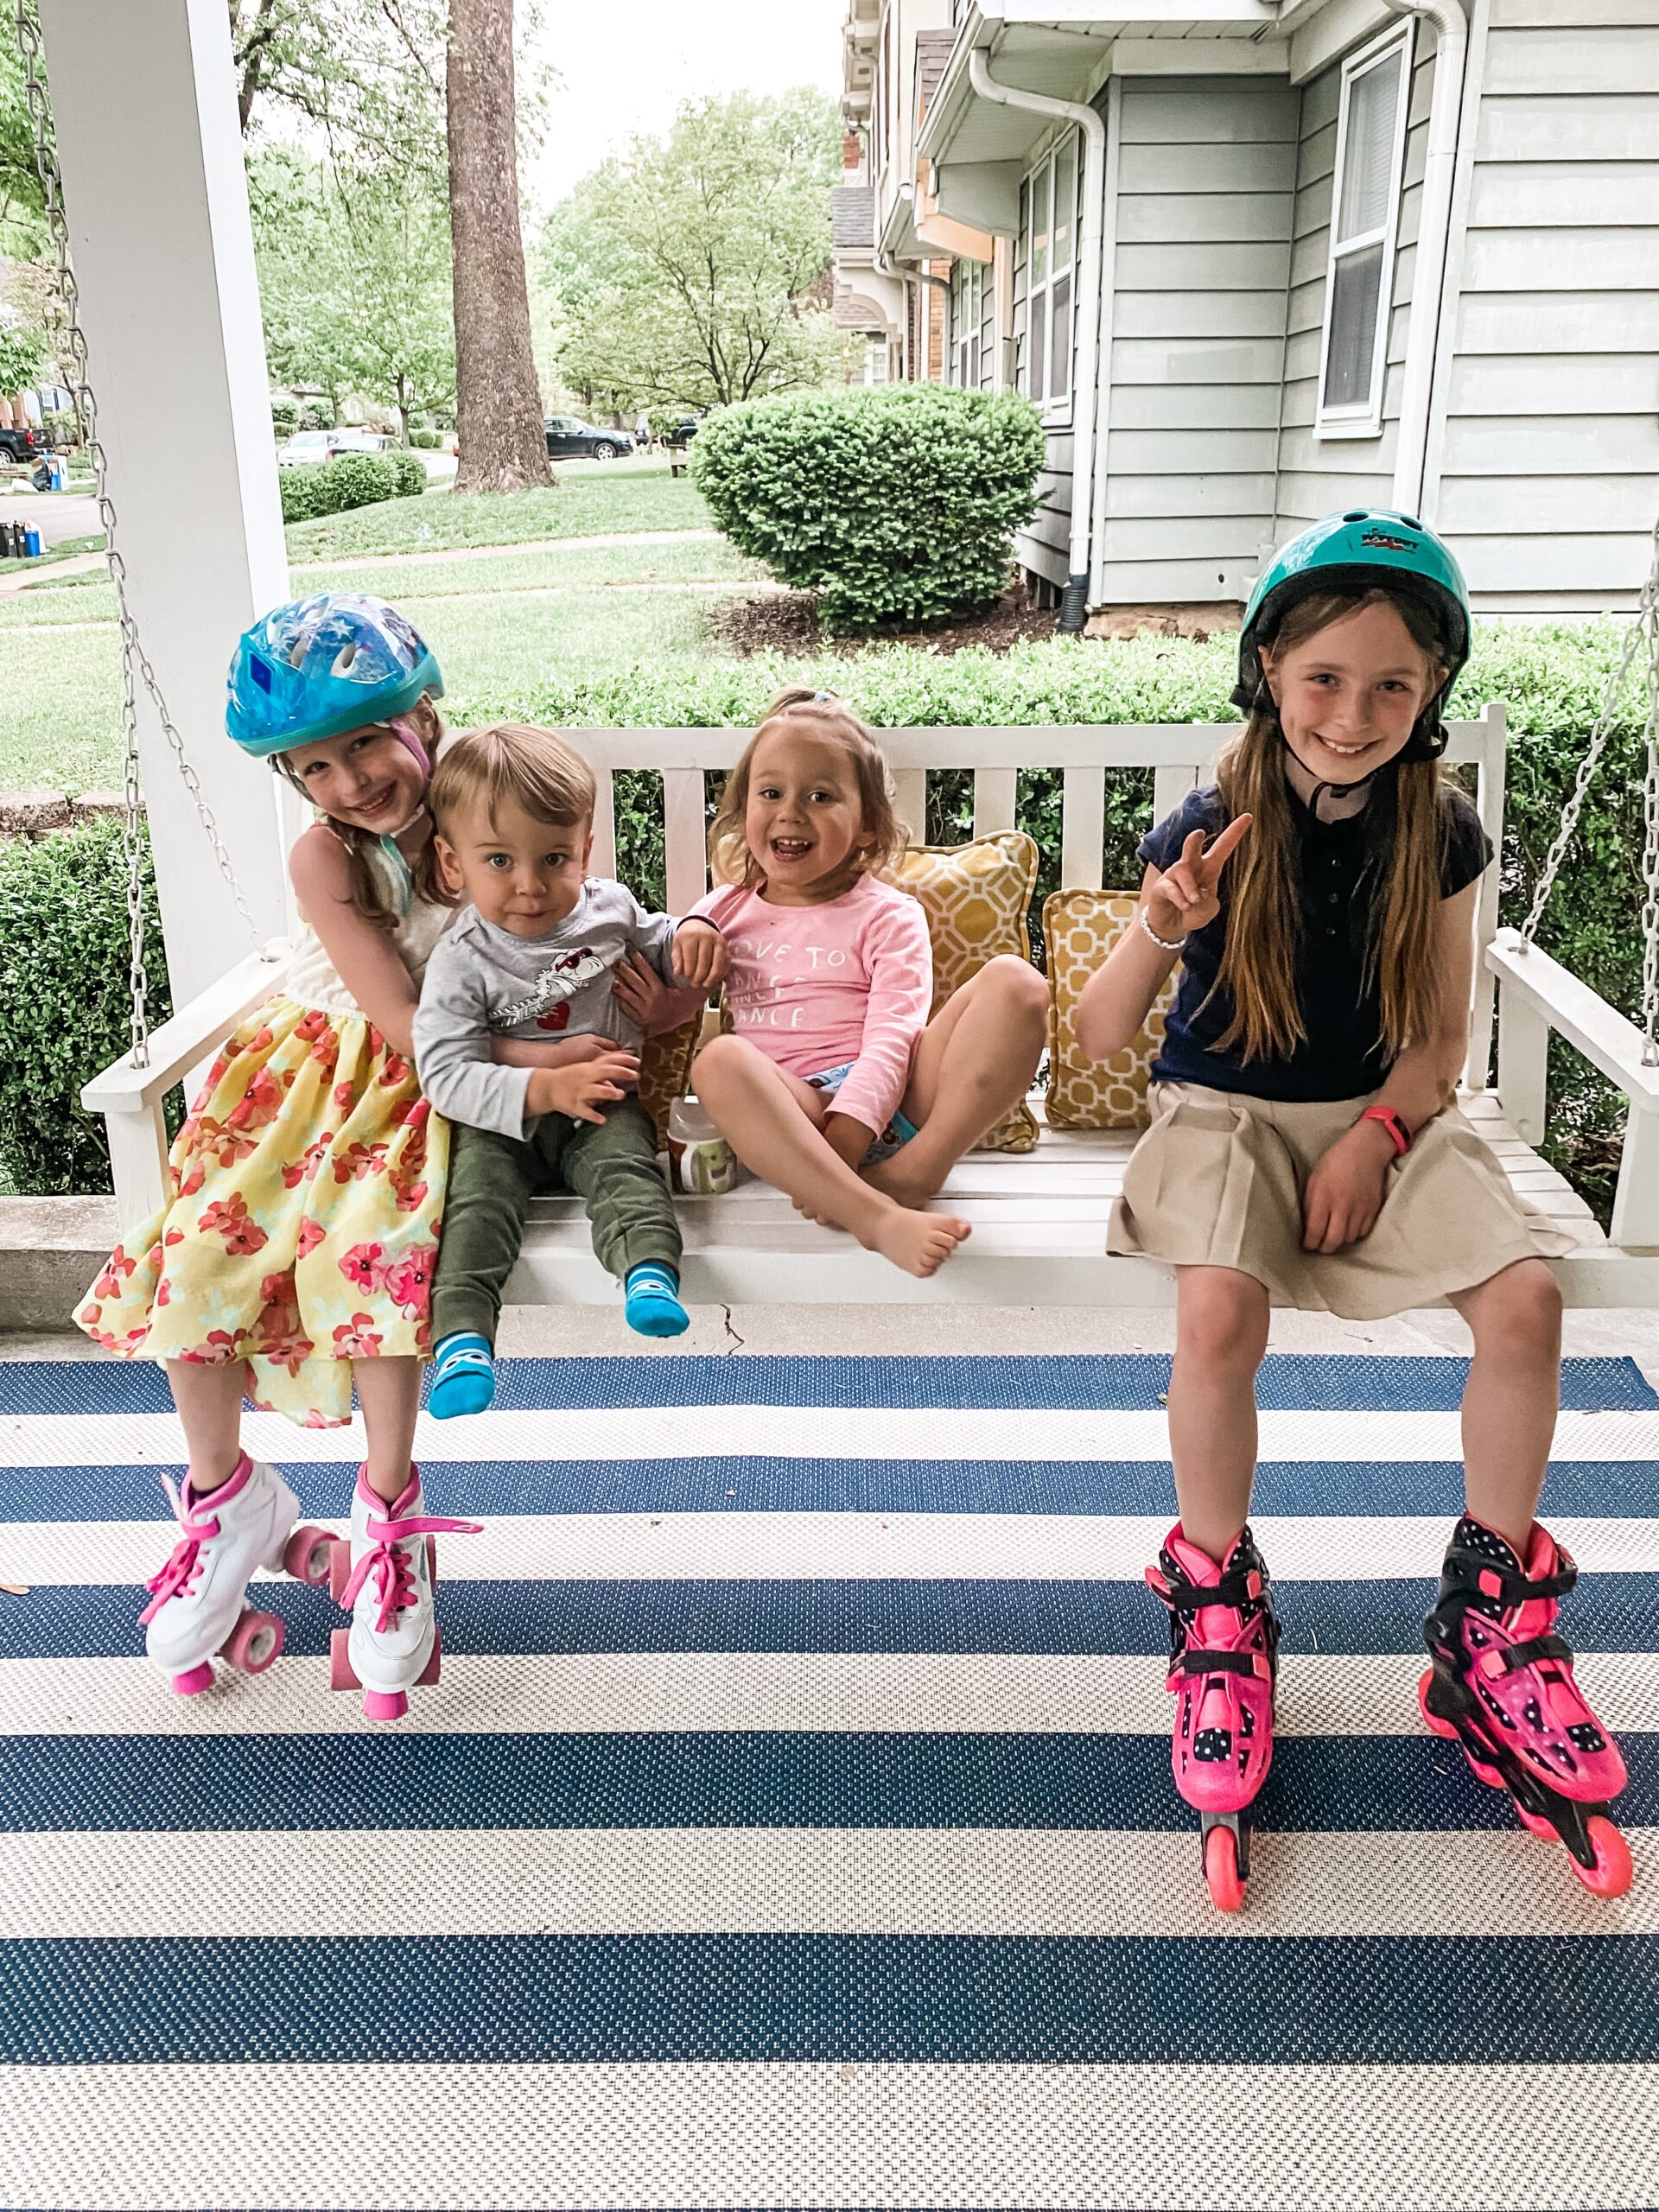 Four children on porch swing. Two girls are wearing bike helmets and roller blades. Younger girl and younger boy are sitting between the two girls in roller blades.